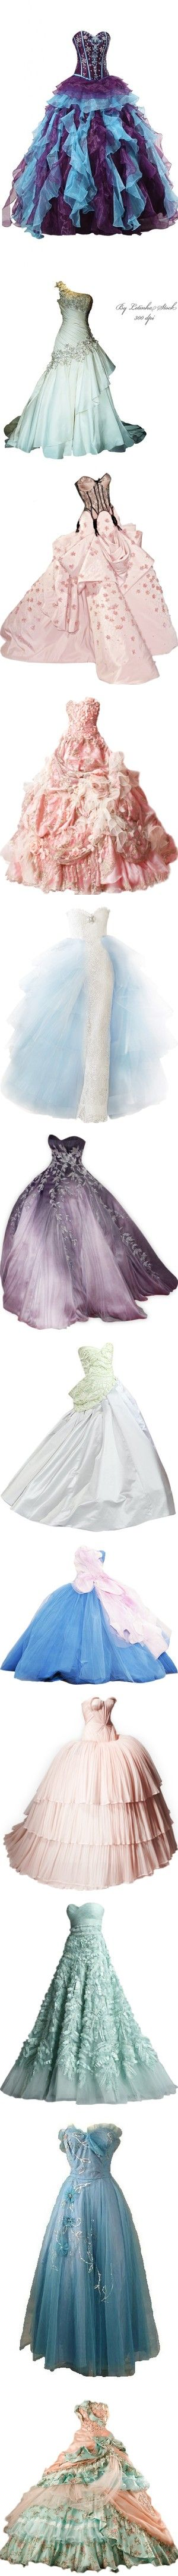 *-* Gorgeous Gowns *-* by blackseagirl on Polyvore featuring dresses, gowns…